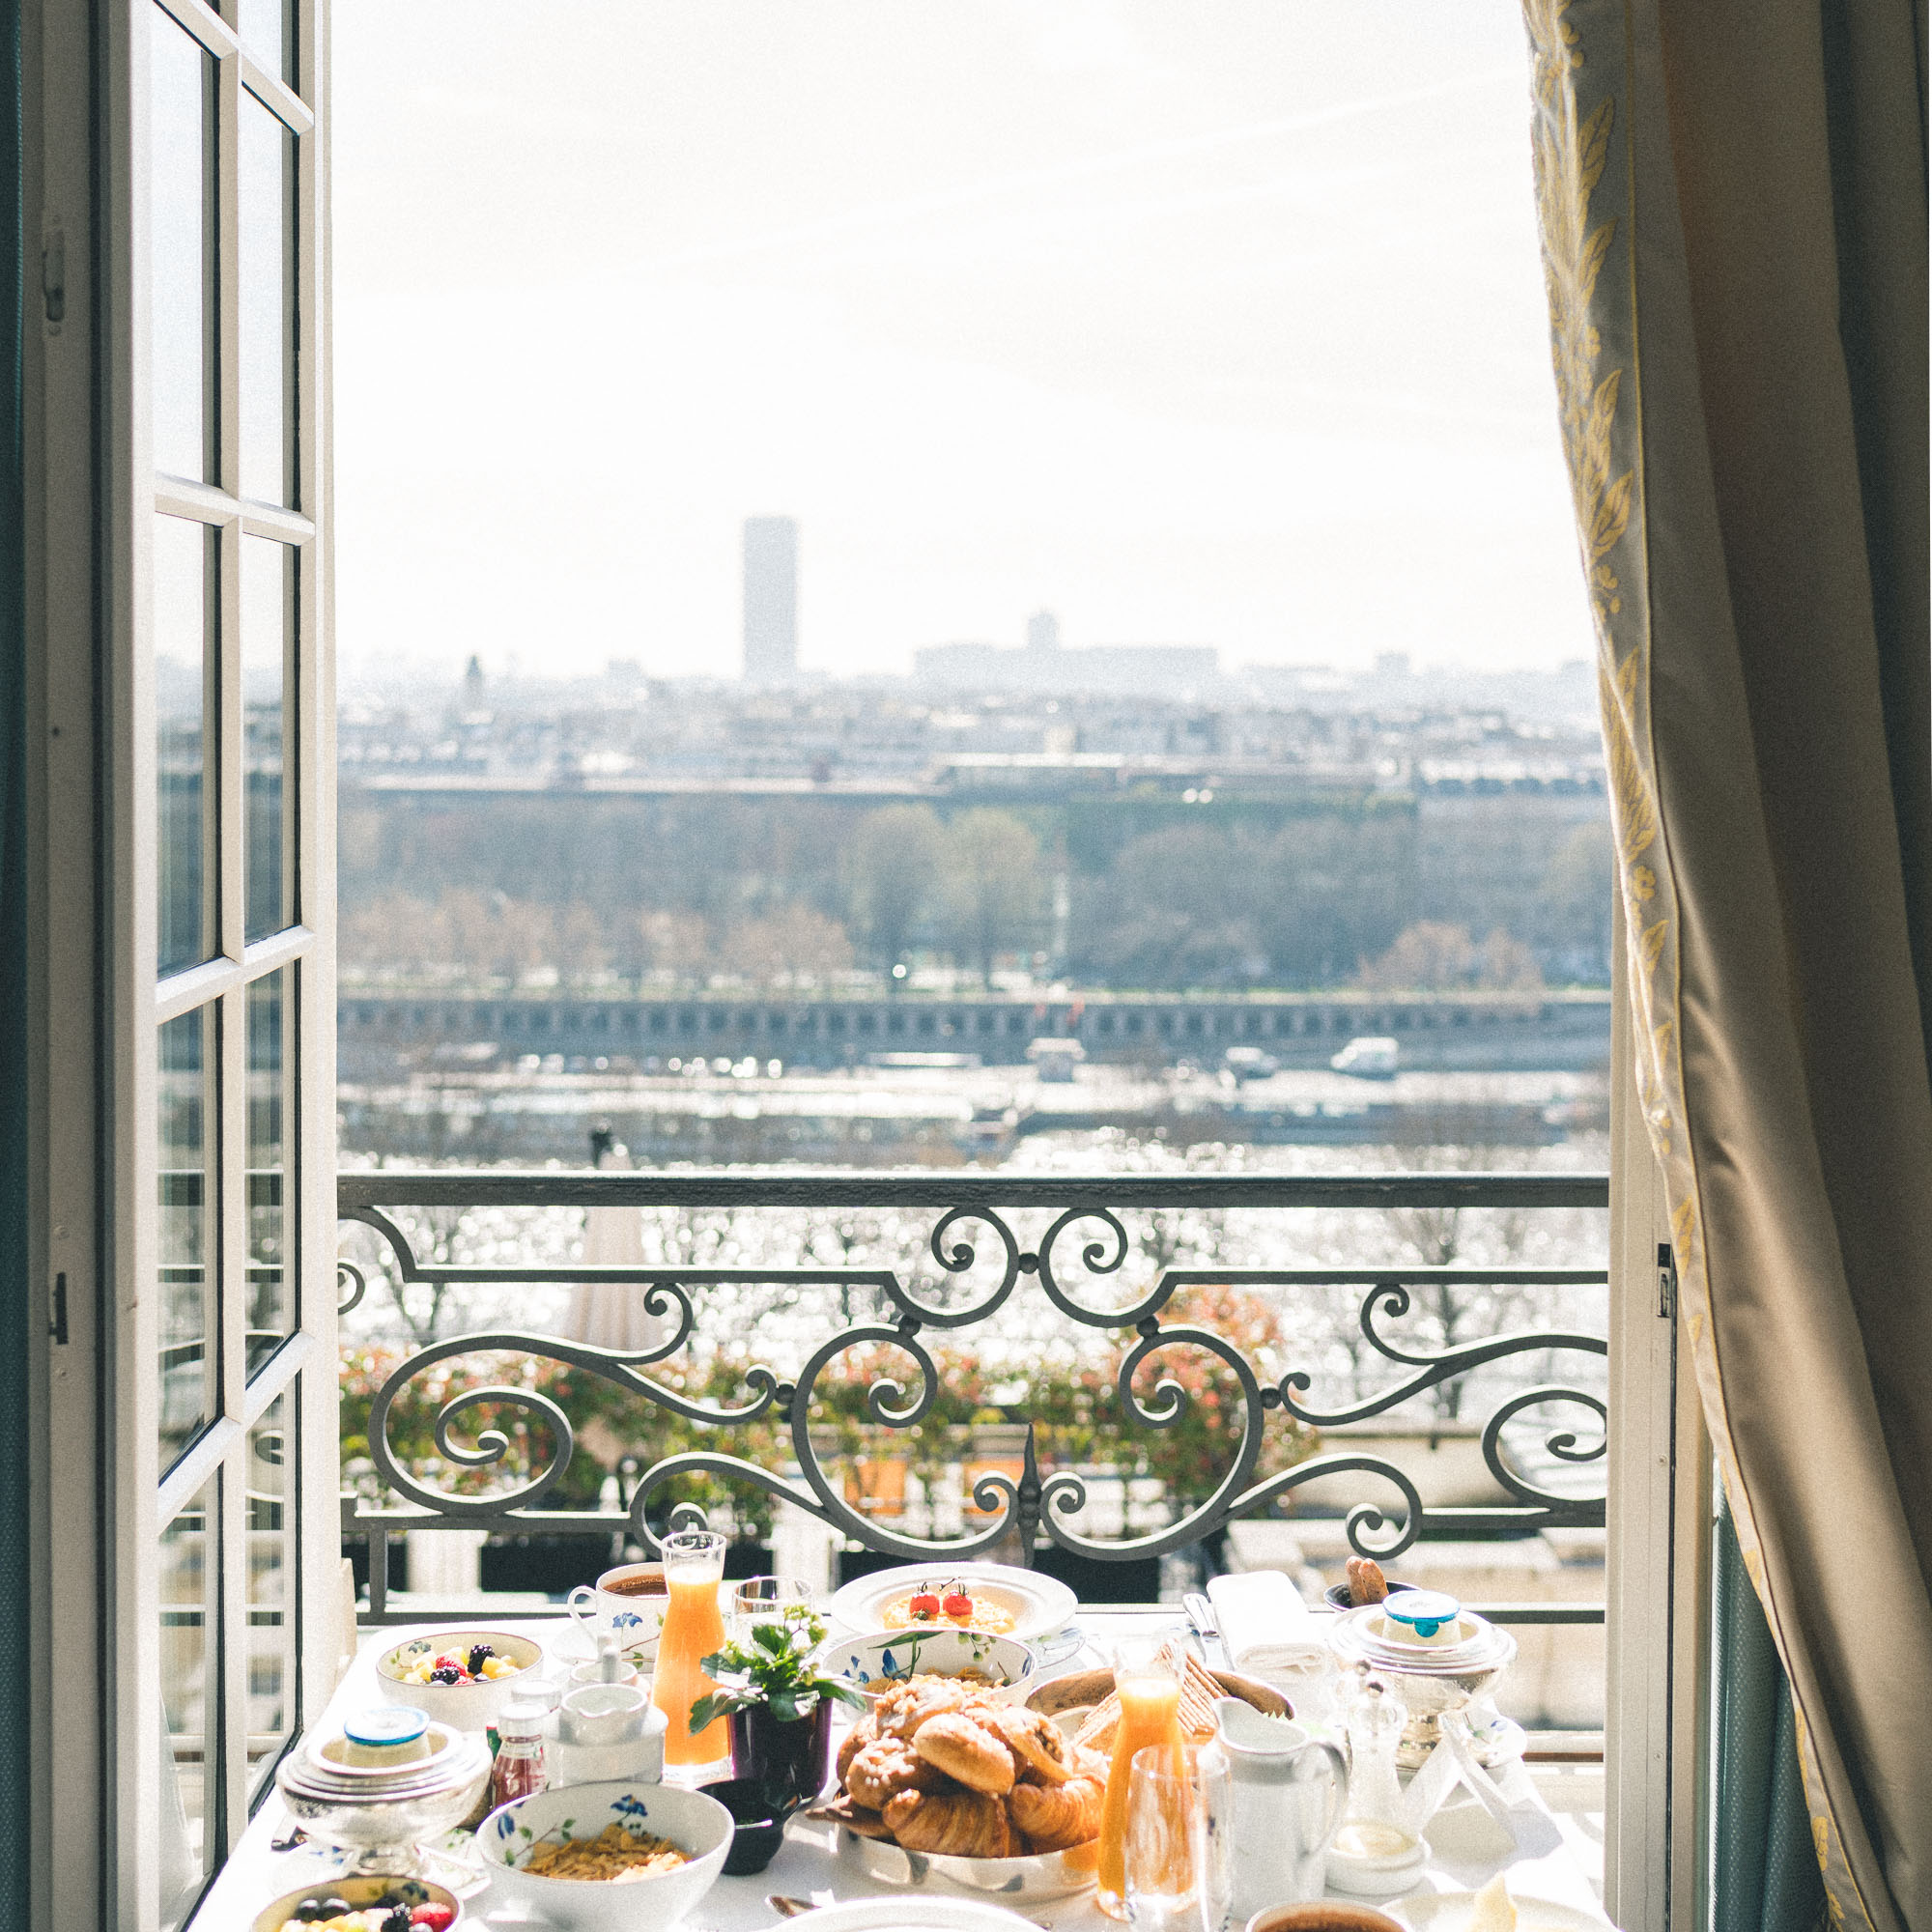 Views from Shangri La Paris - Complete Paris Travel Guide